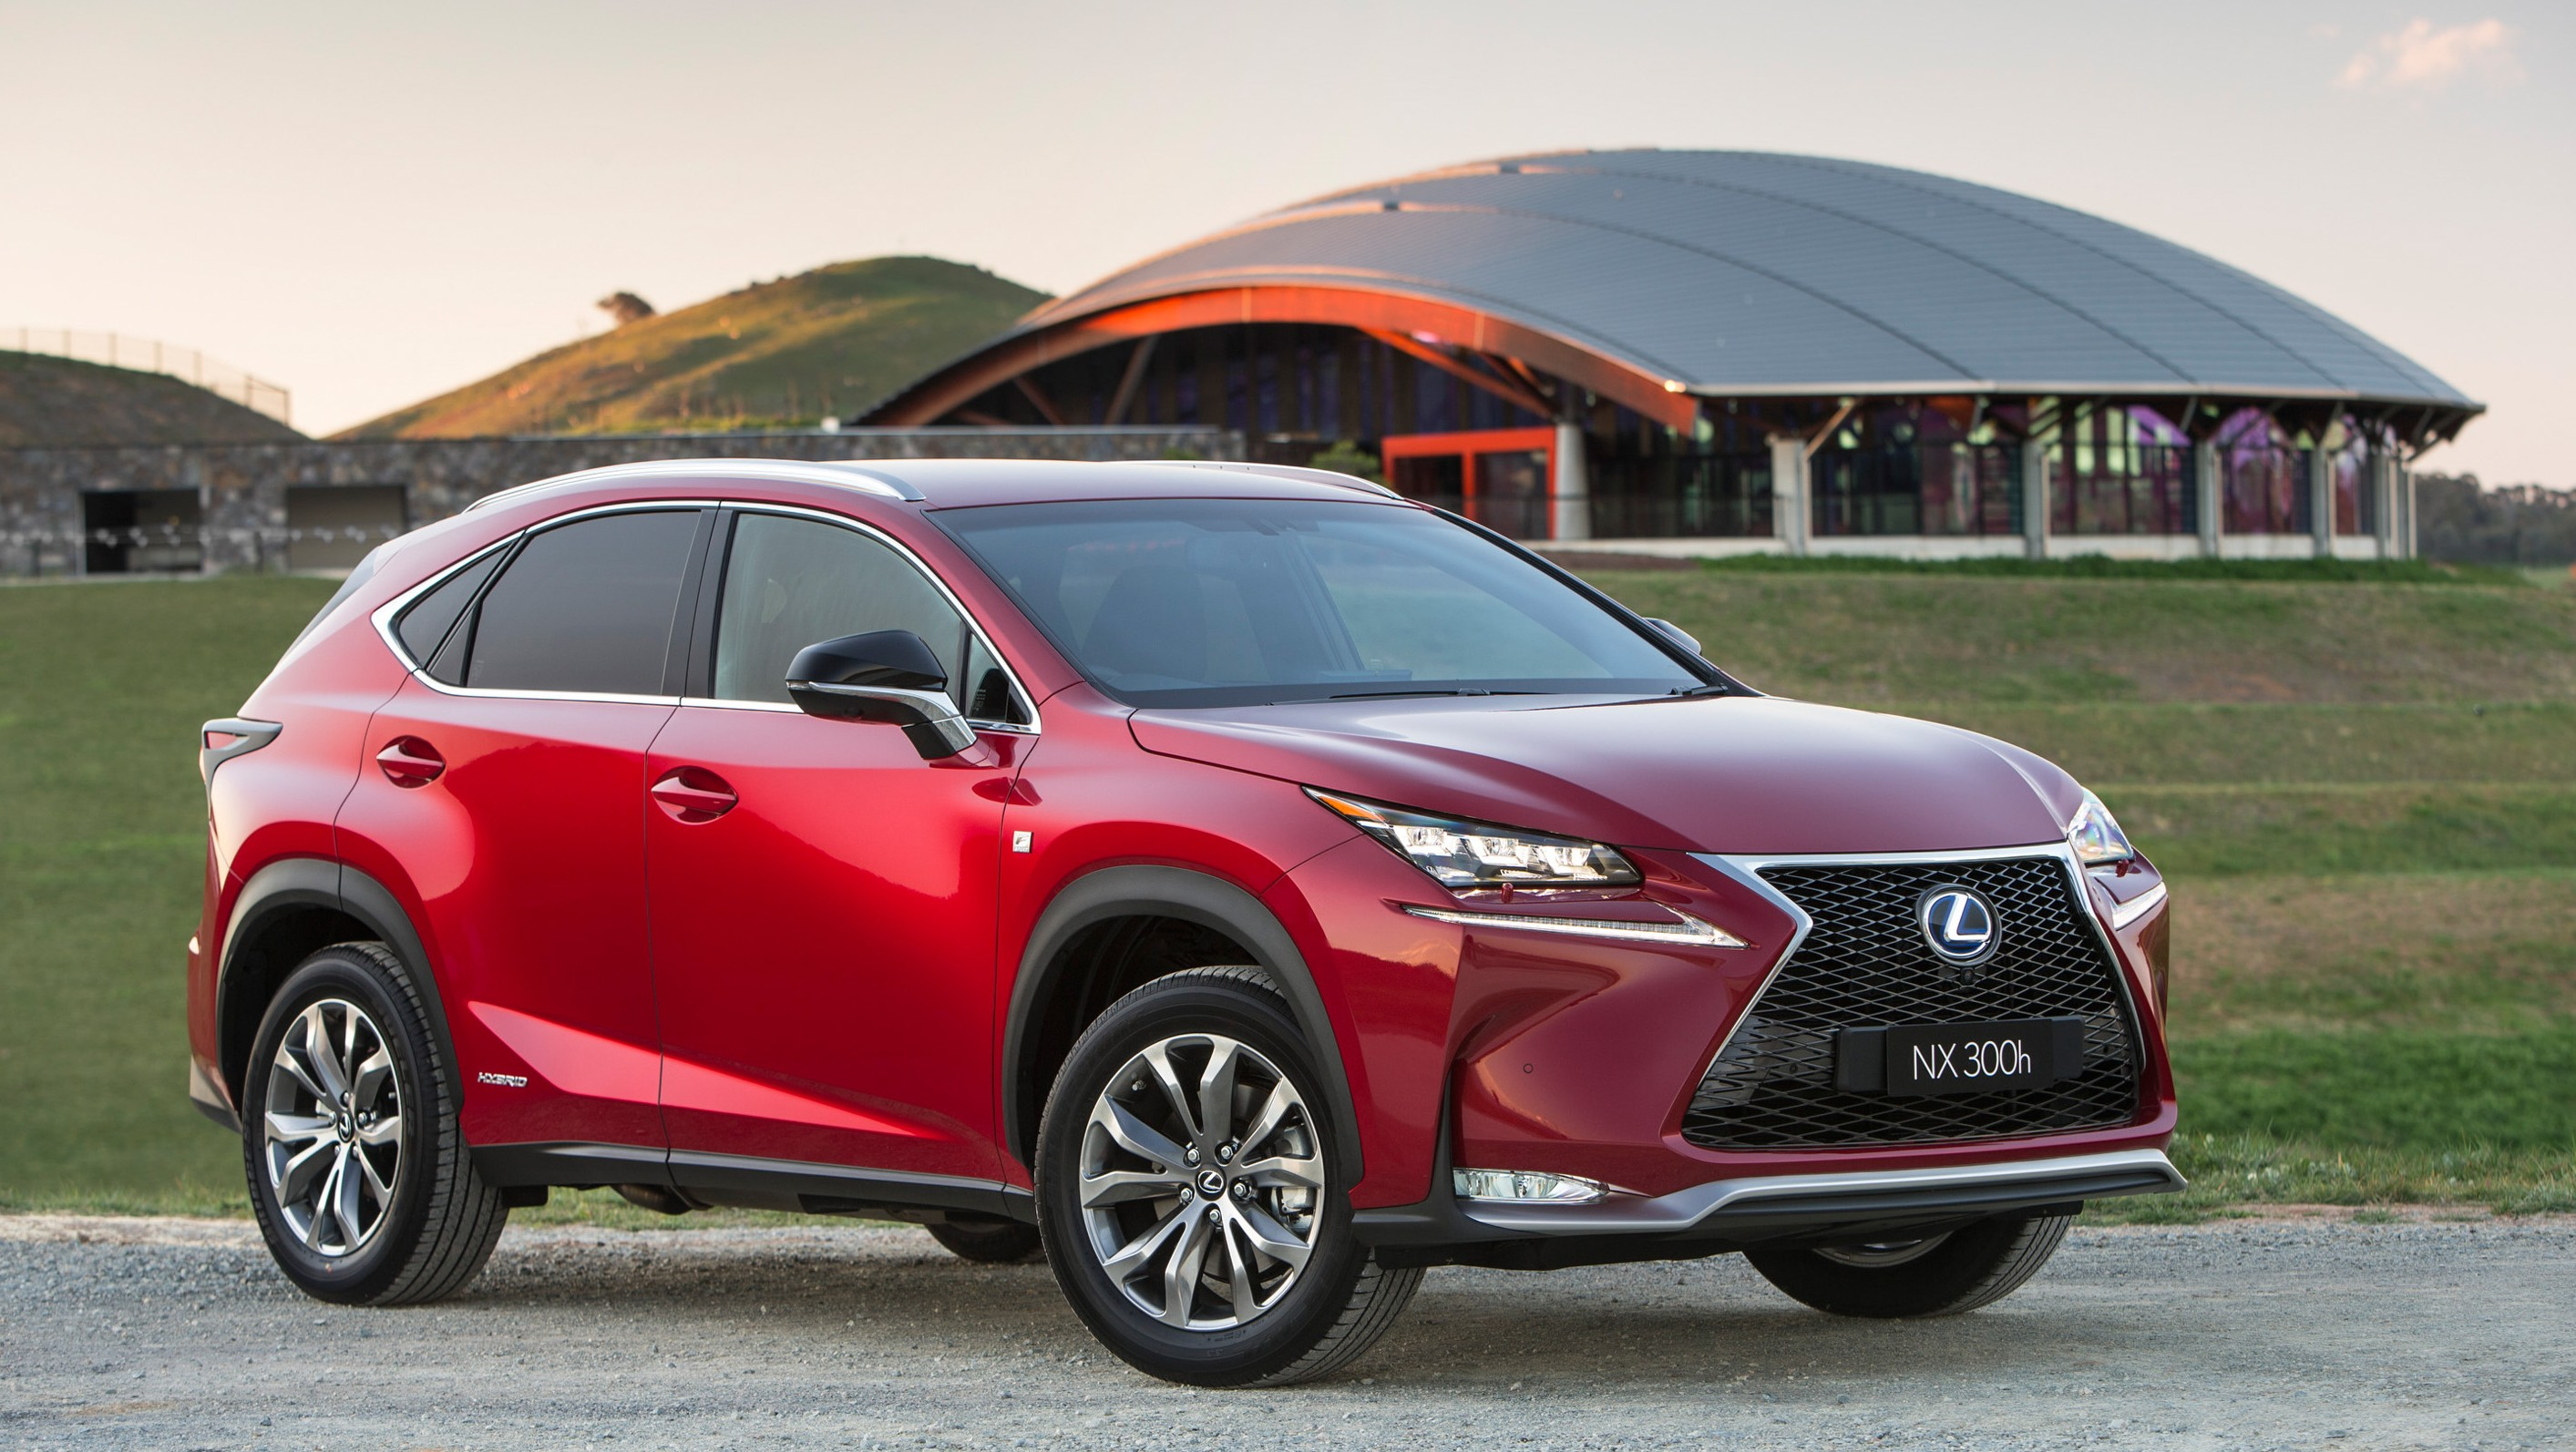 Lexus Nx300h Review 2015 Chasing Cars